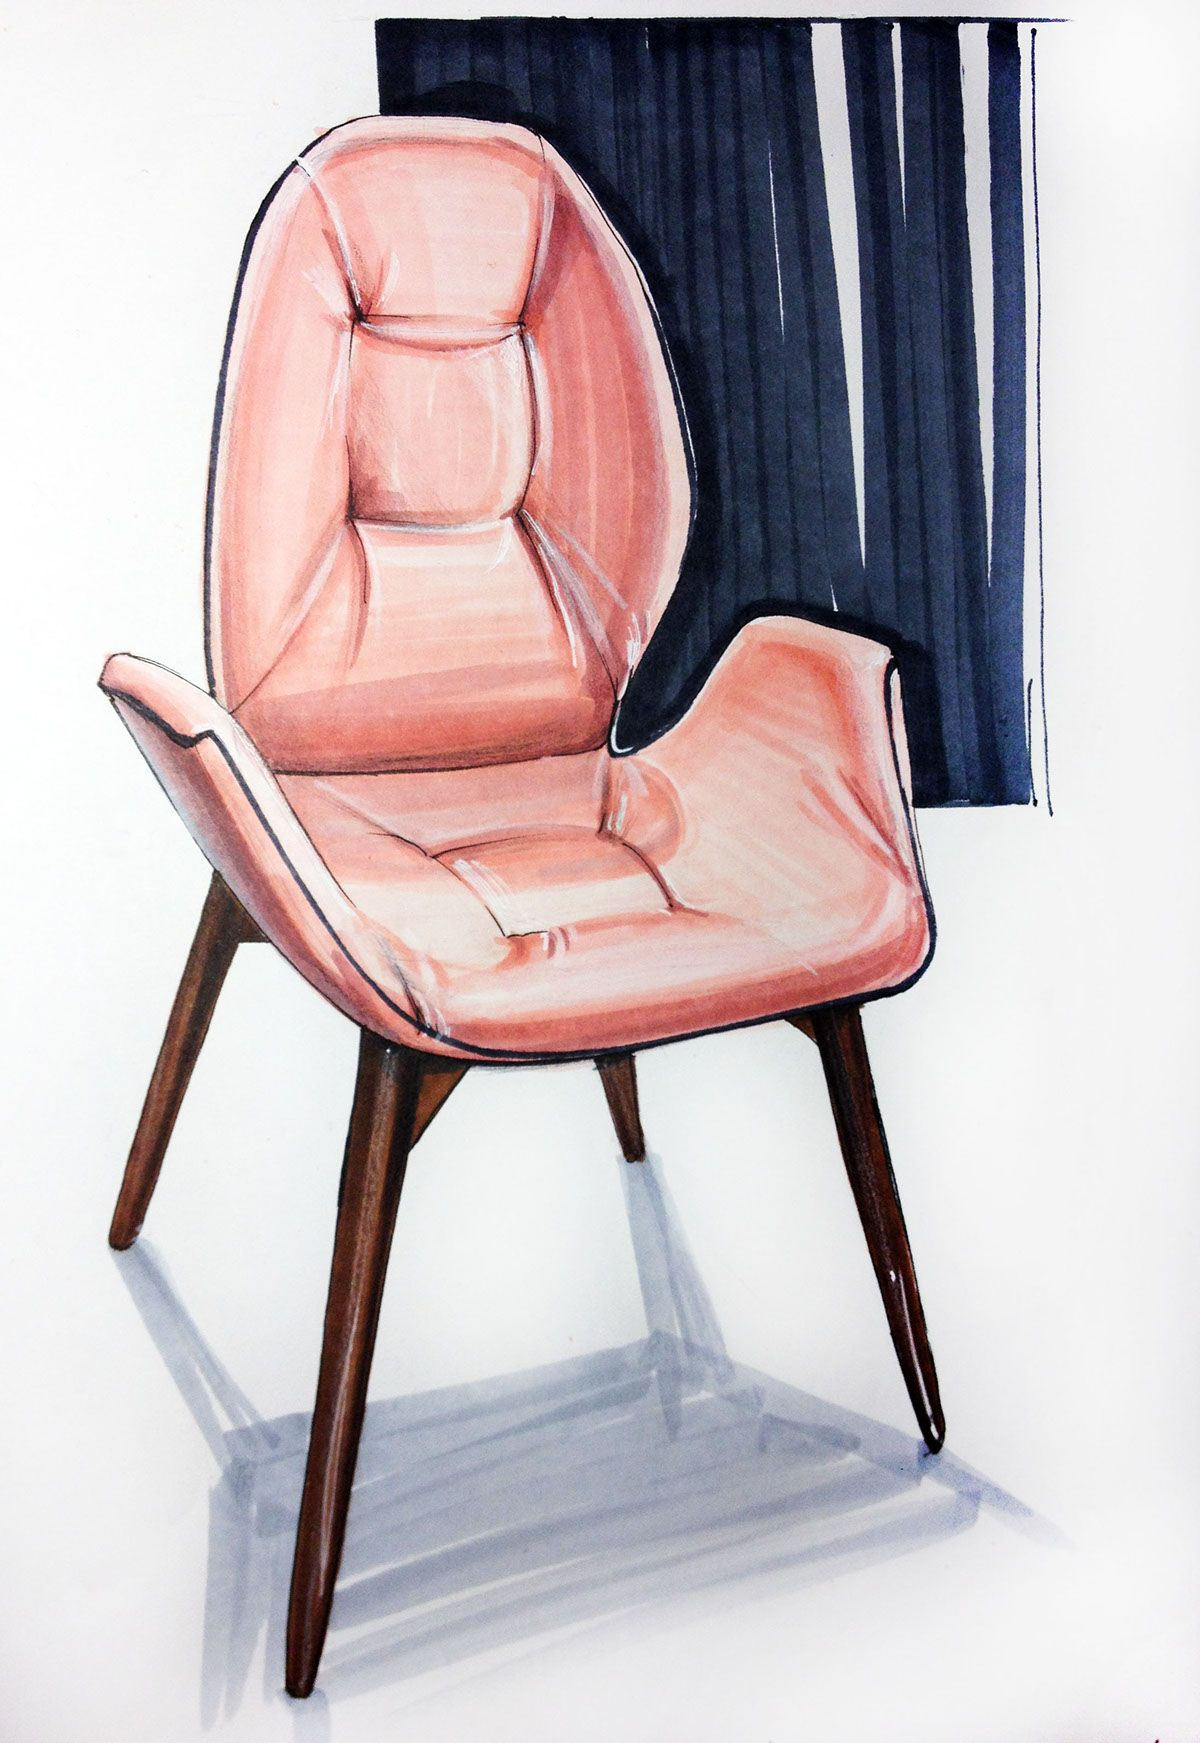 How To Draw Chair? Interior Design, Interior Sketching, Markers,  Watercolor, House